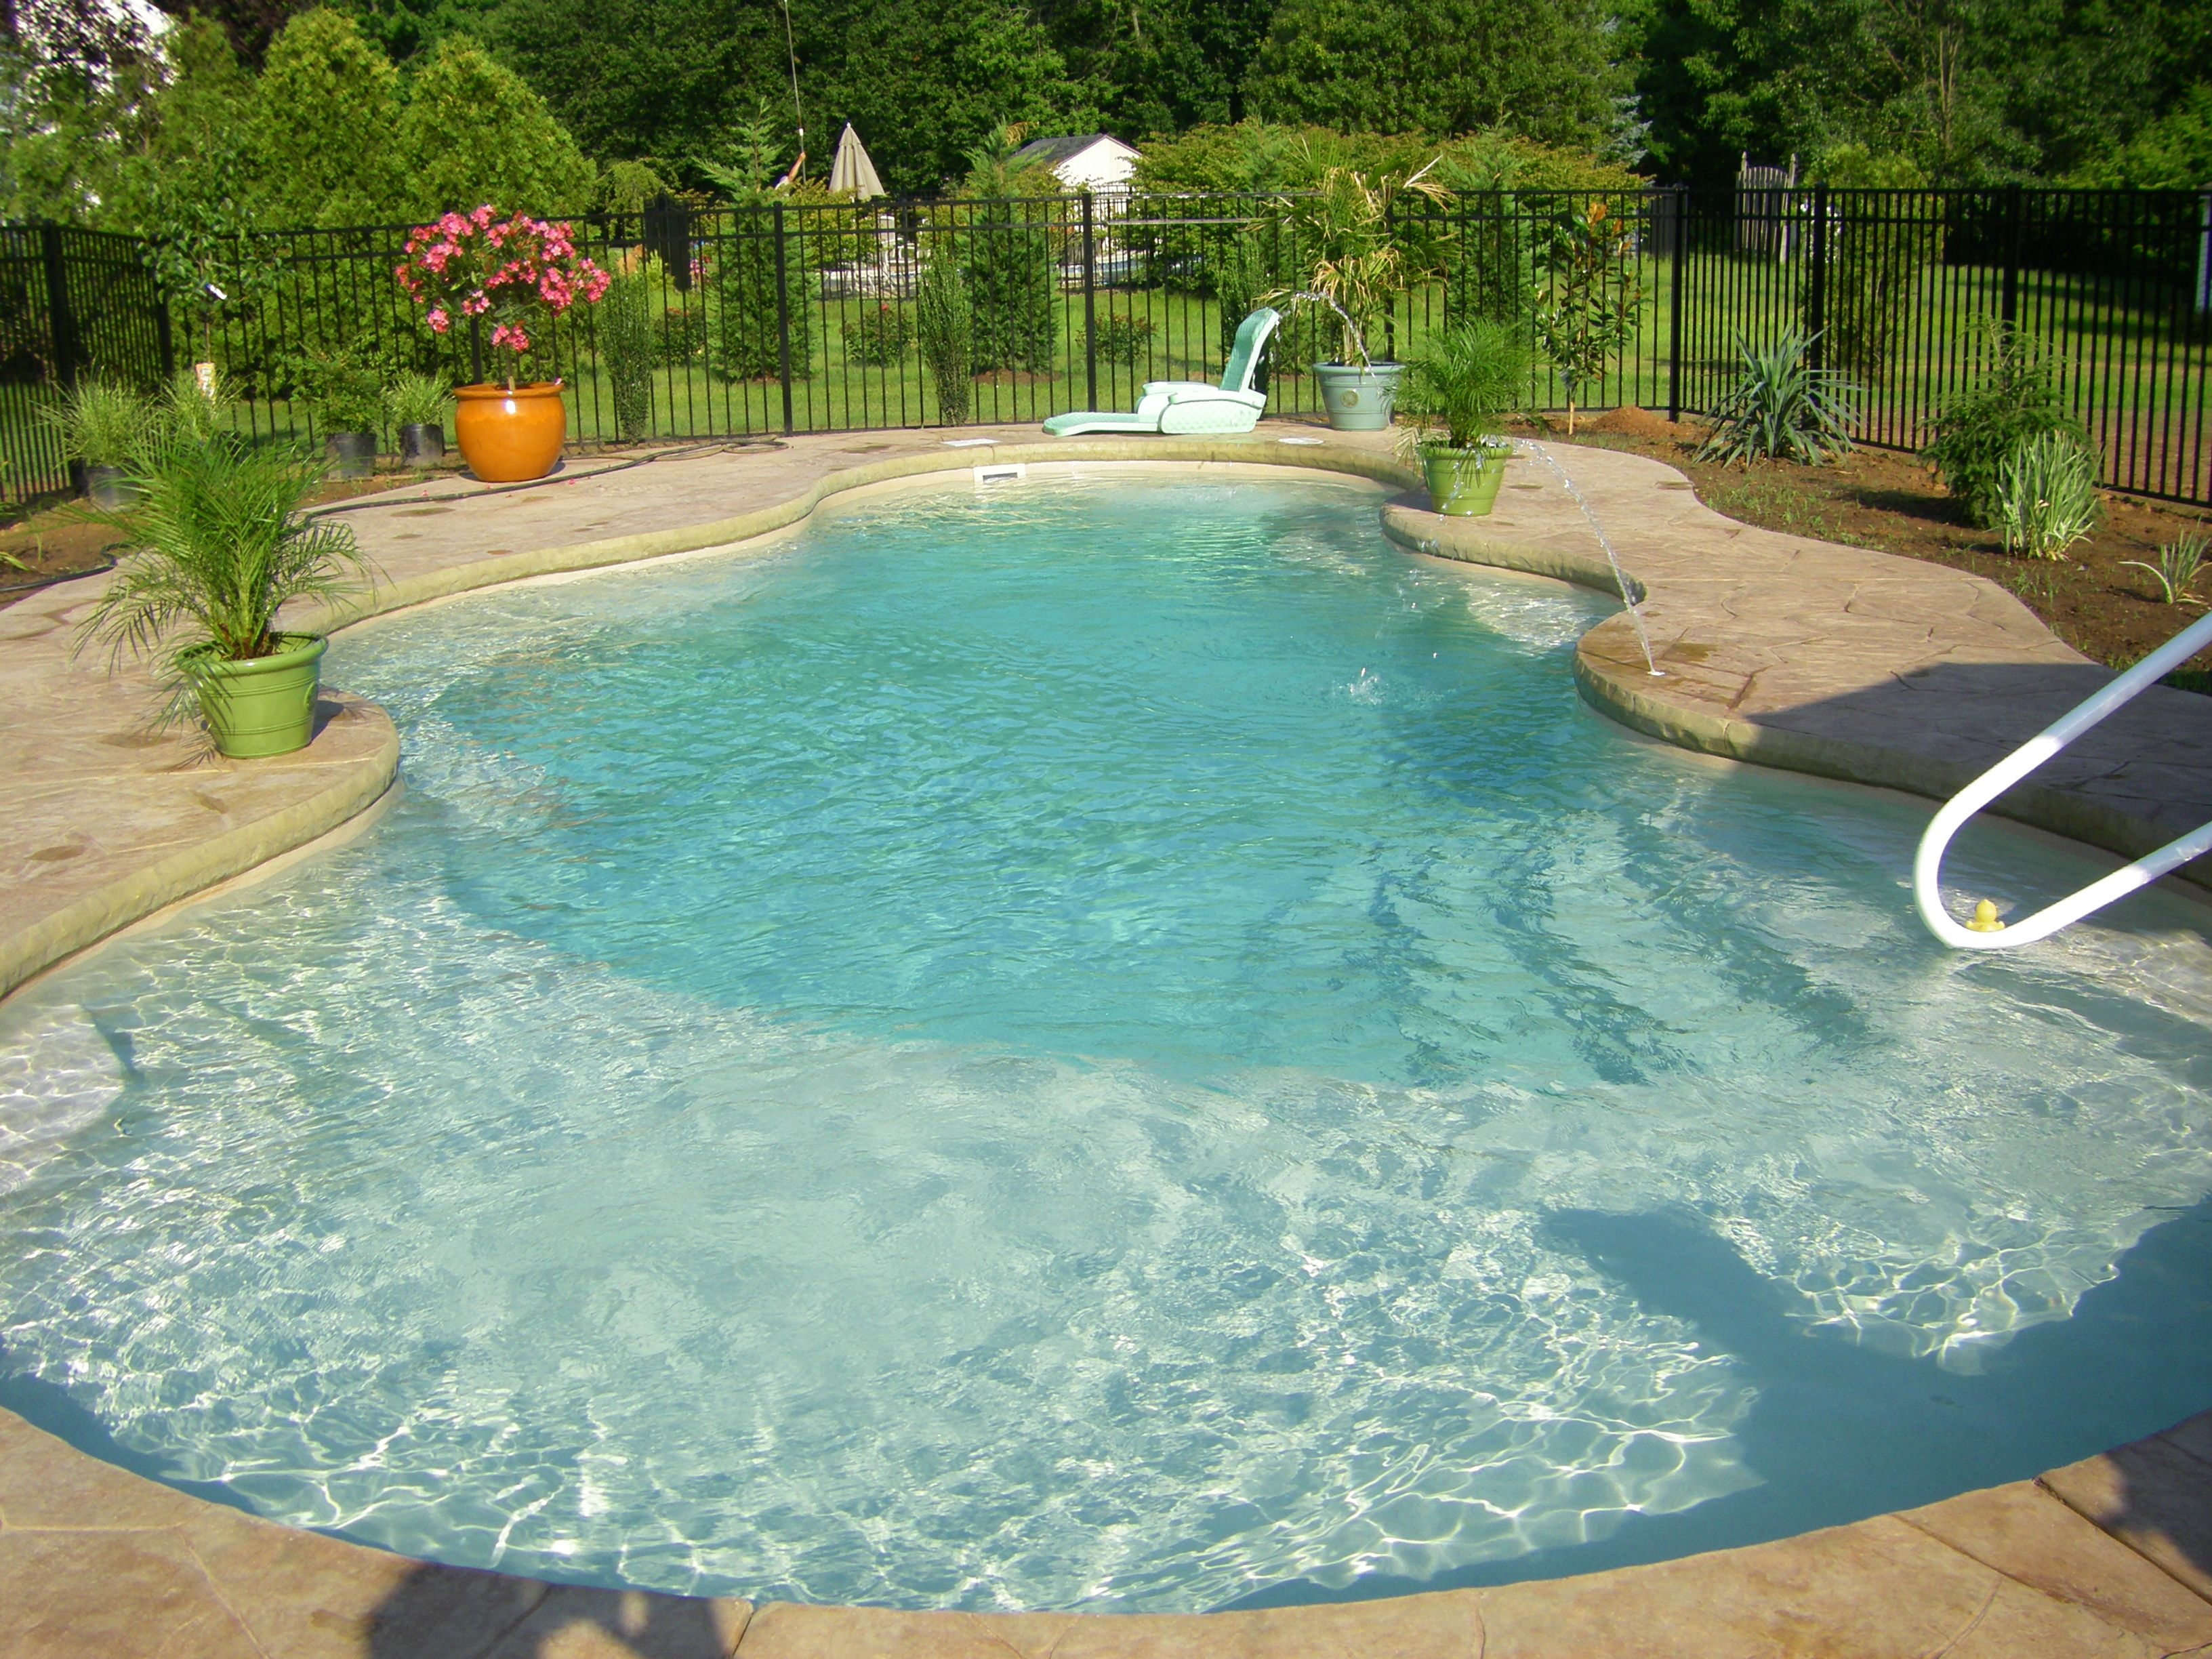 Tanning ledge pools pinterest for Pool design with tanning ledge